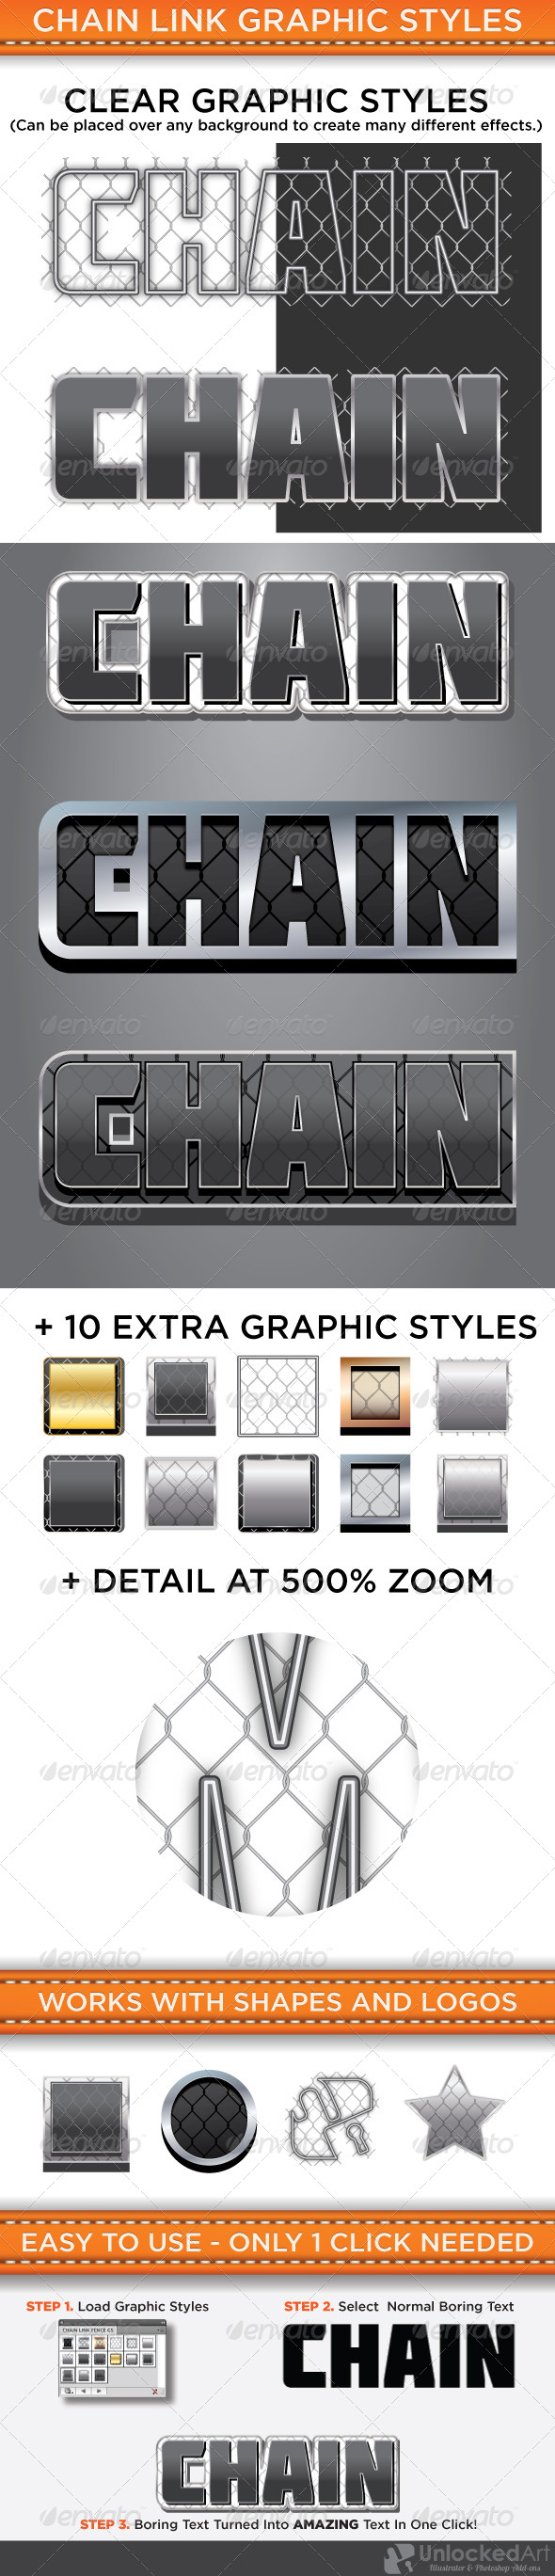 GraphicRiver Chain Link Graphic Styles 4623465